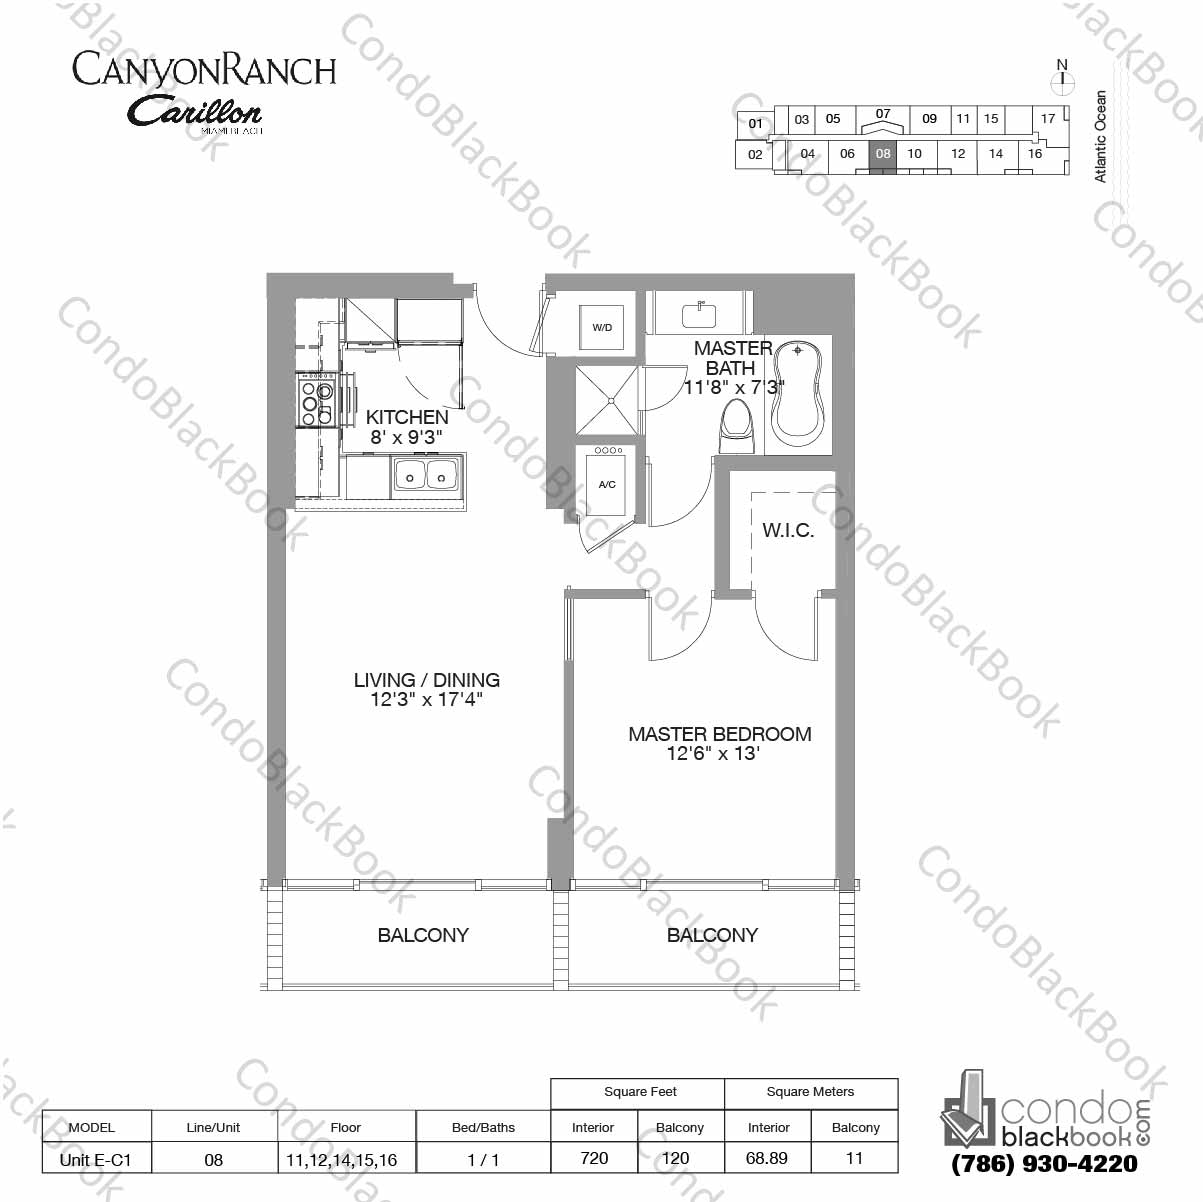 Floor plan for Carillon Miami Resort & Condo North Beach Miami Beach, model Unit E-C1, line 08, 1 / 1 bedrooms, 720 sq ft